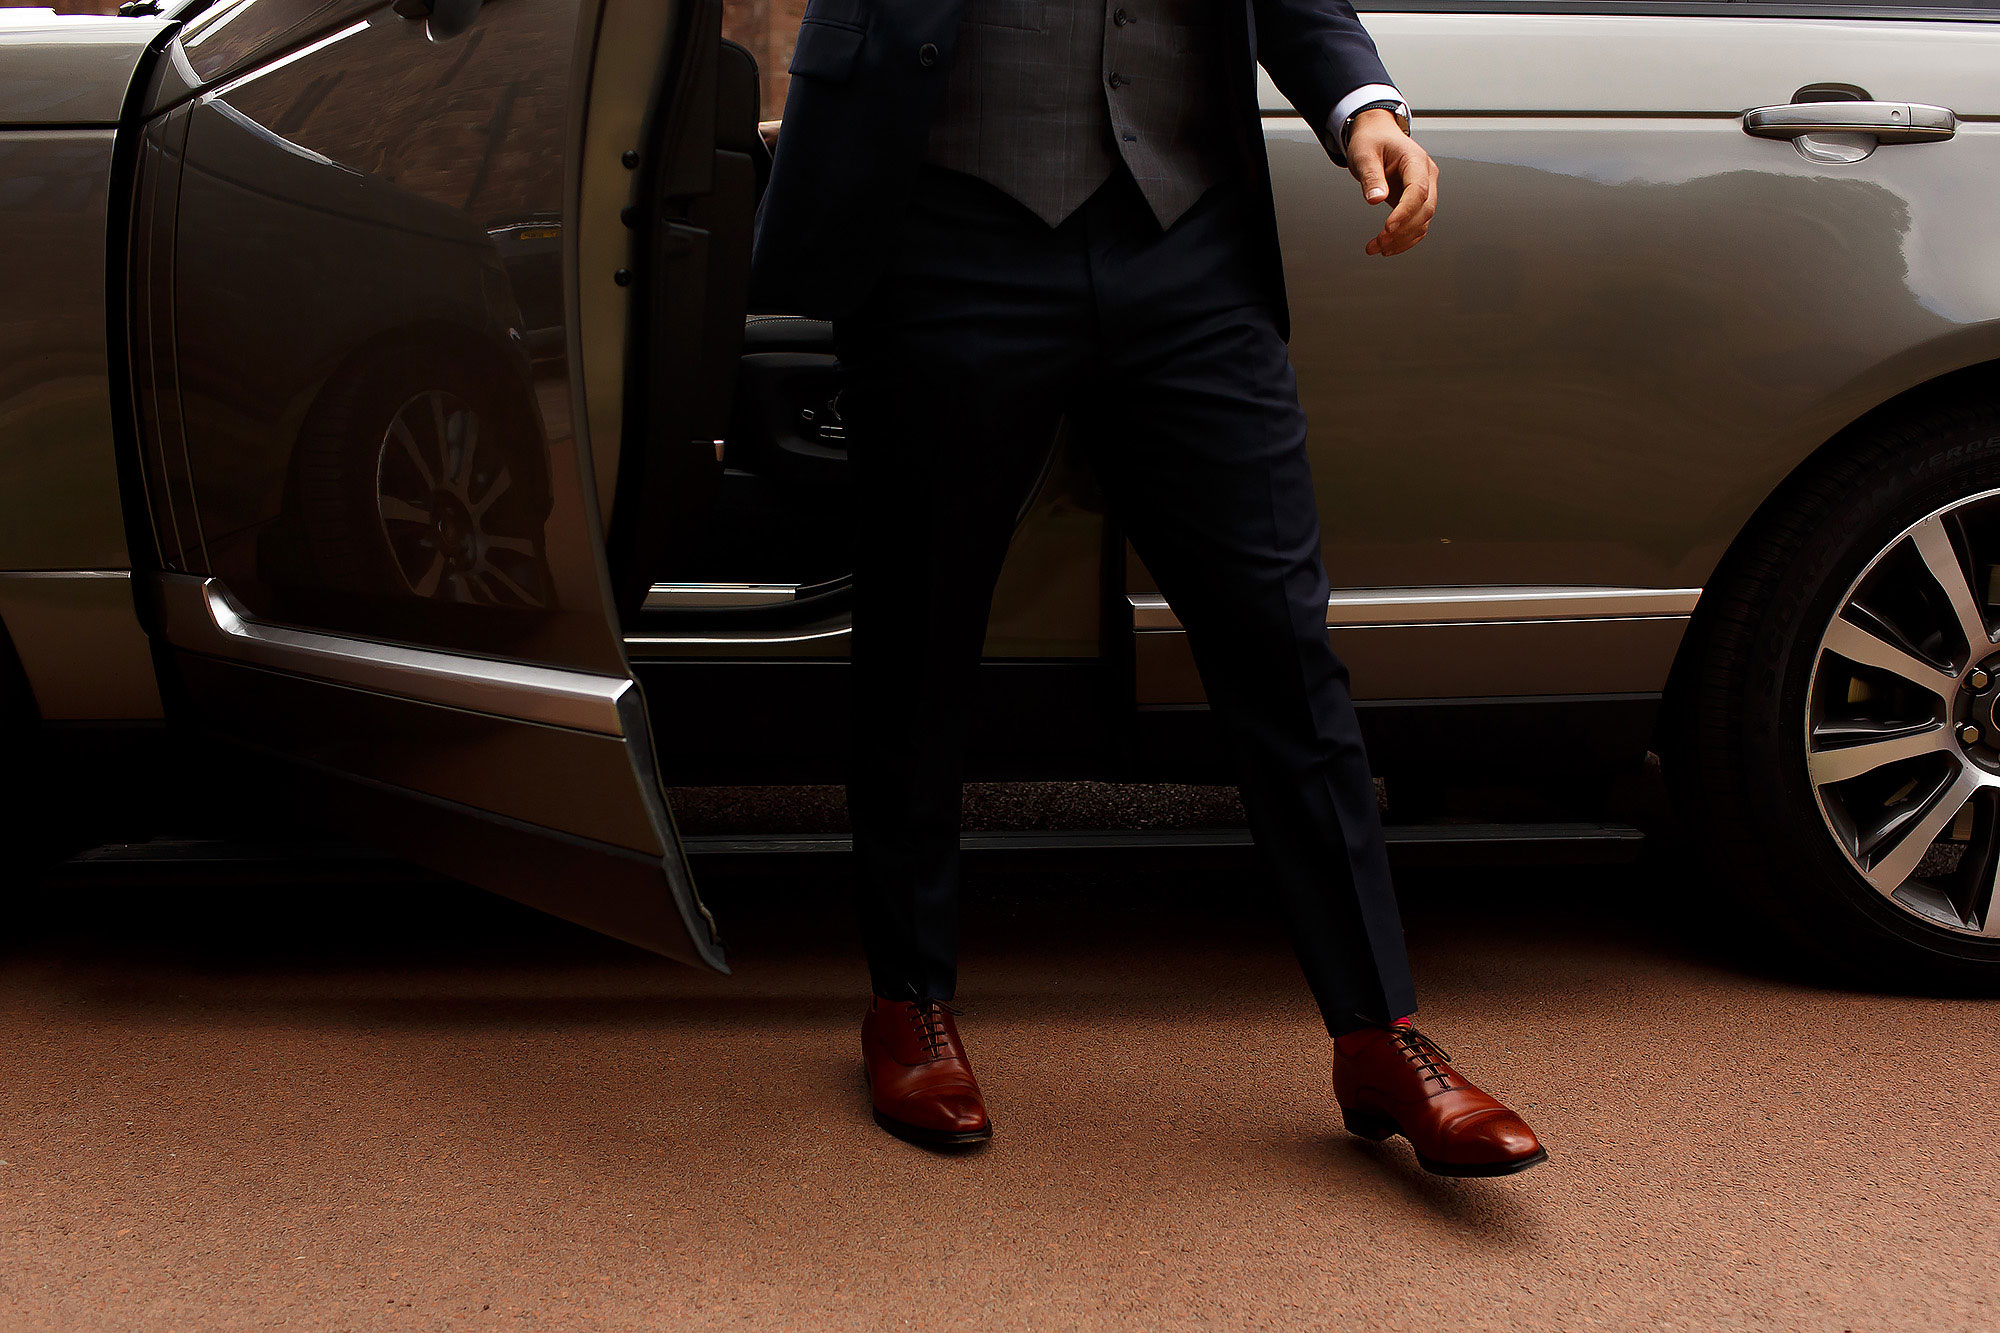 Groom wearing navy suit and brown shoes stepping out of wedding car | Peckforton Castle Wedding by Toni Darcy Photography